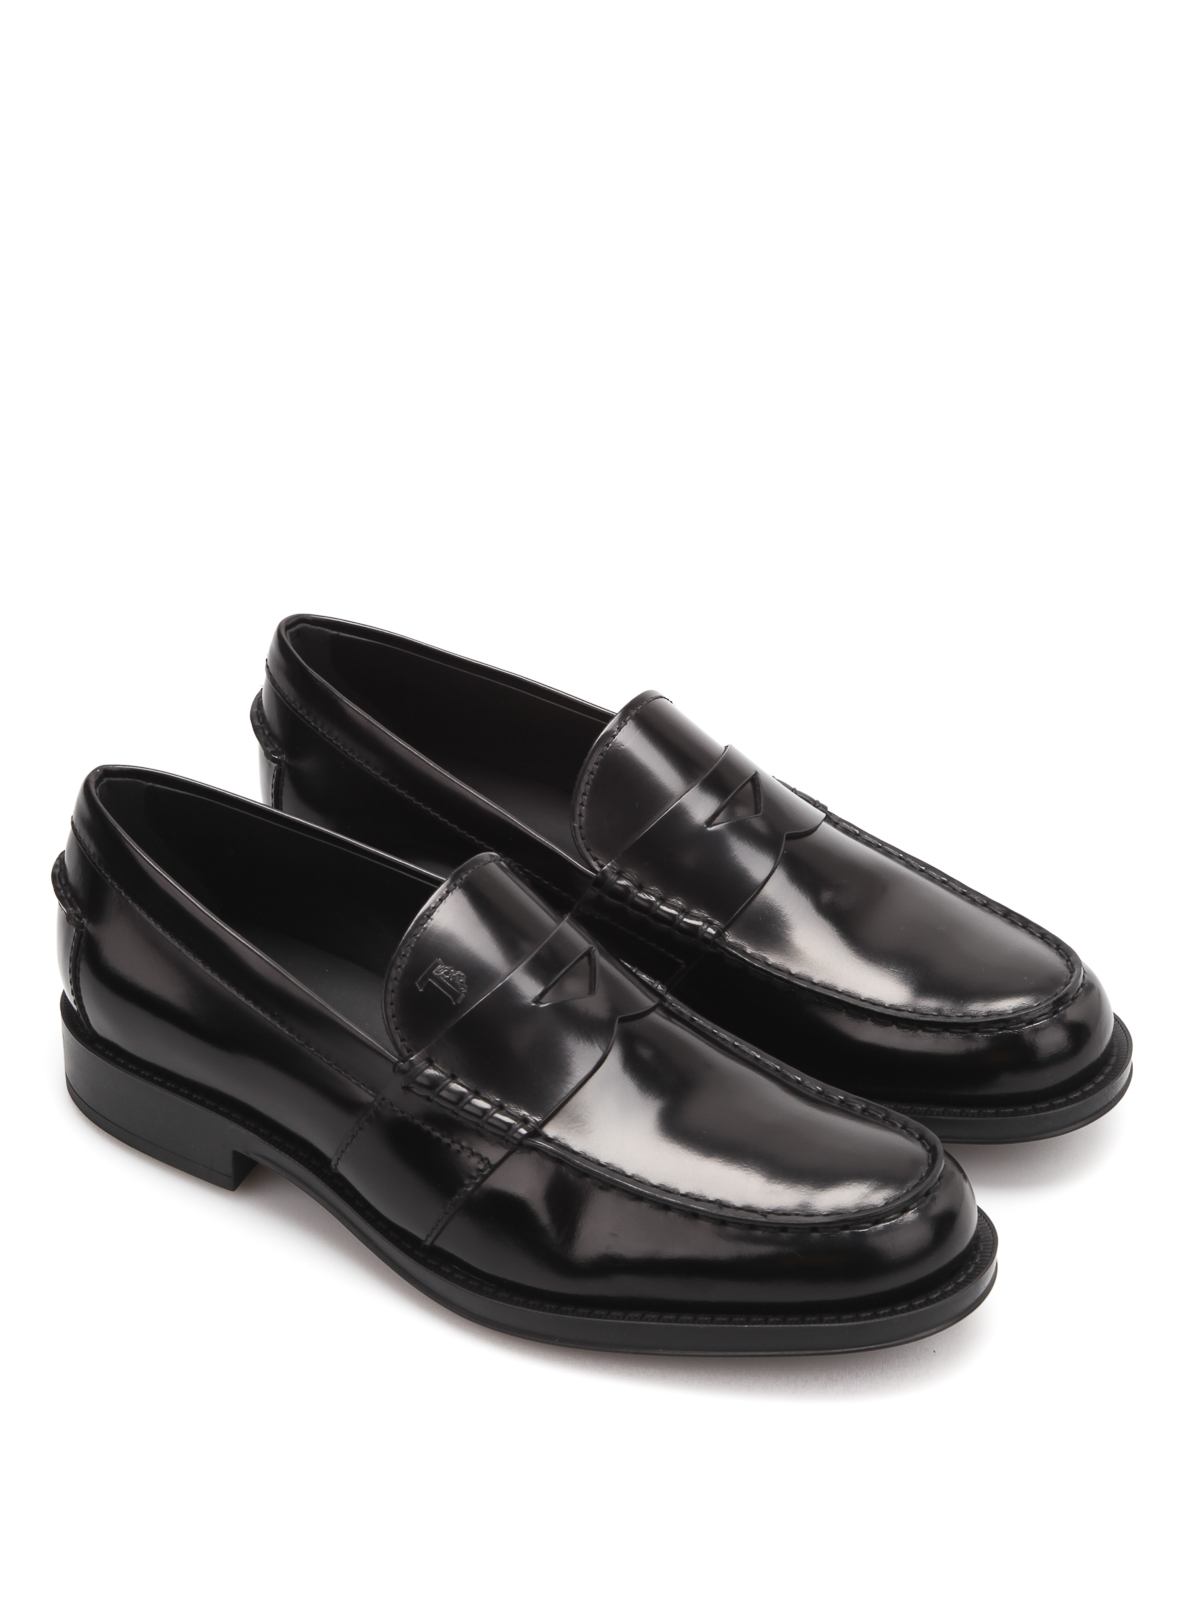 Tods Mens | Tods Loafers | Tods Ferrari Loafers